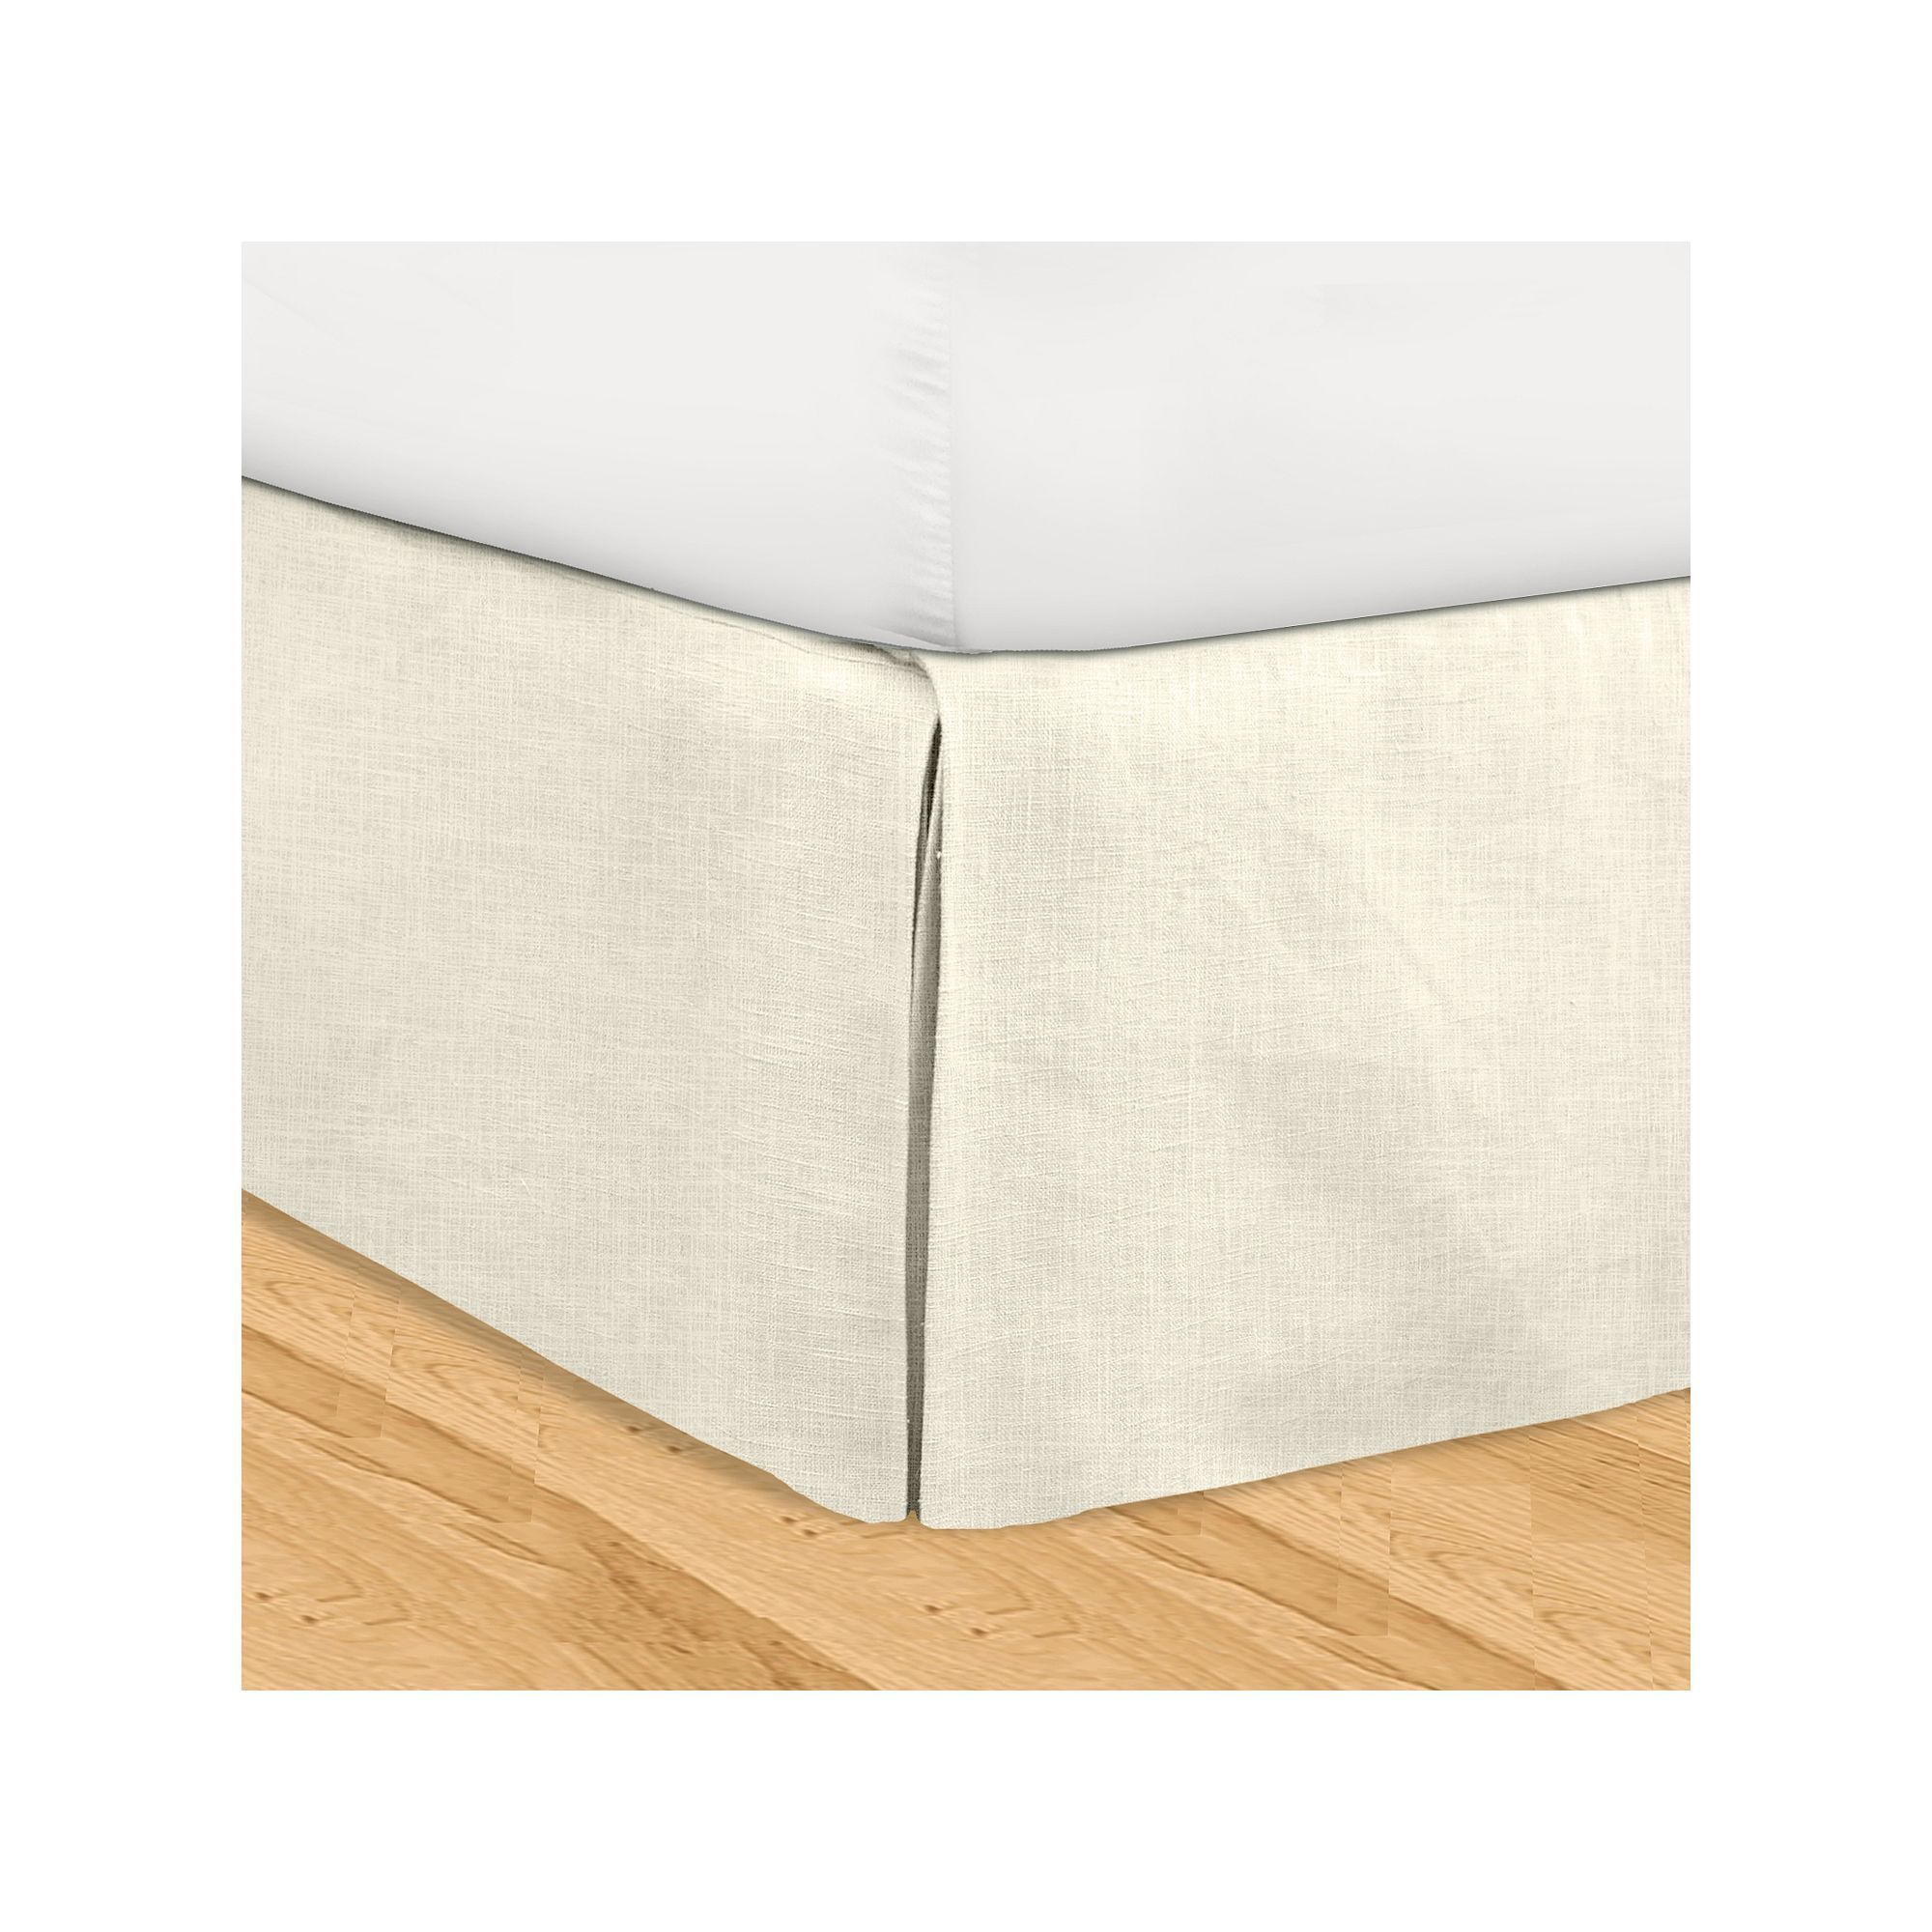 veratex adjustable bed skirt white oth adjustablebeds adjustable